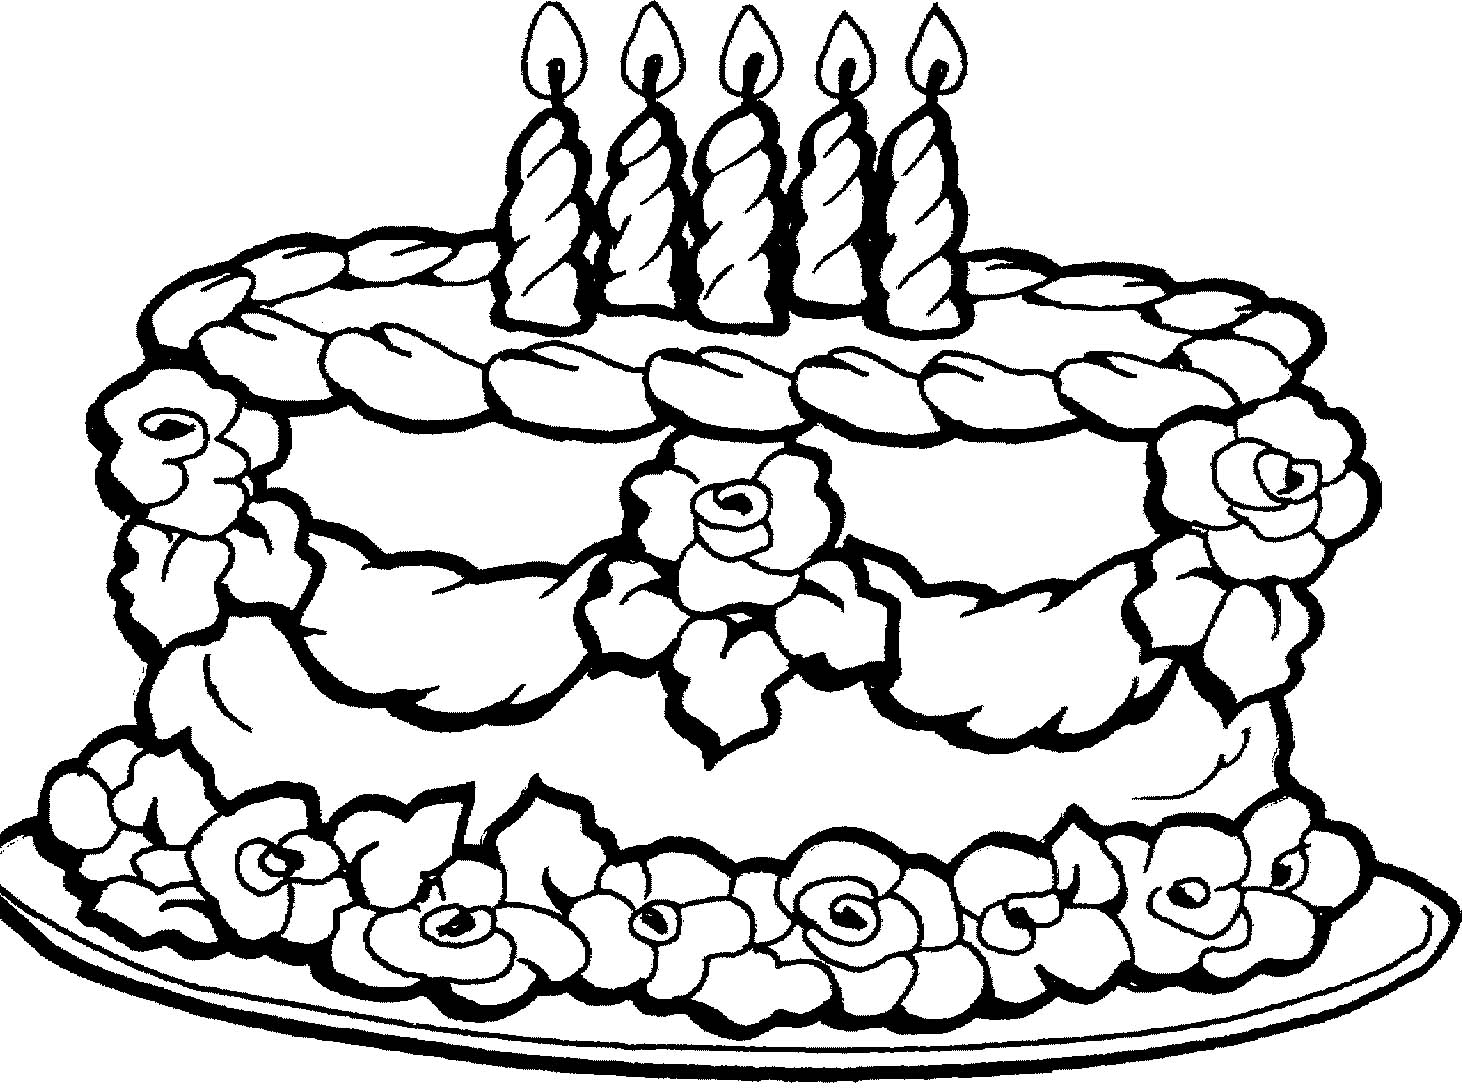 birthday cake coloring sheet ; birthday-cake-coloring-pages